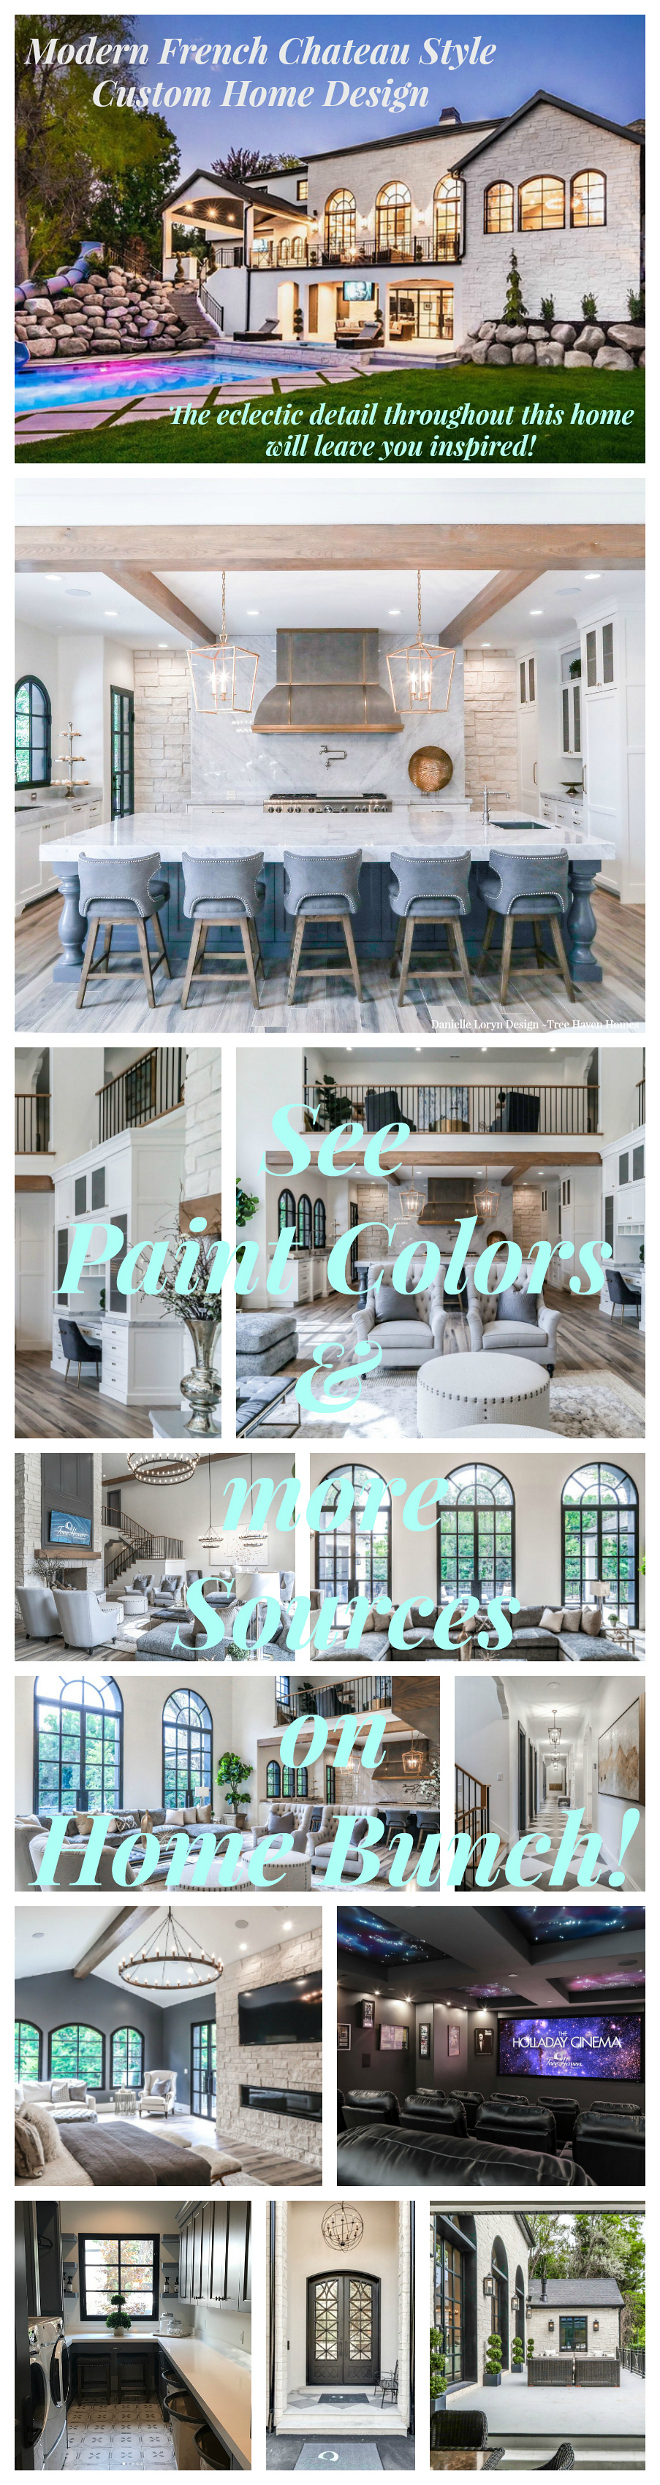 Modern French Chateau Style Custom Home Design. Modern French Chateau Style Custom Home Design Paint Colors and furniture sources #ModernFrenchChateau #FrenchStyleHome #CustomHome #CustomHome Home Bunch